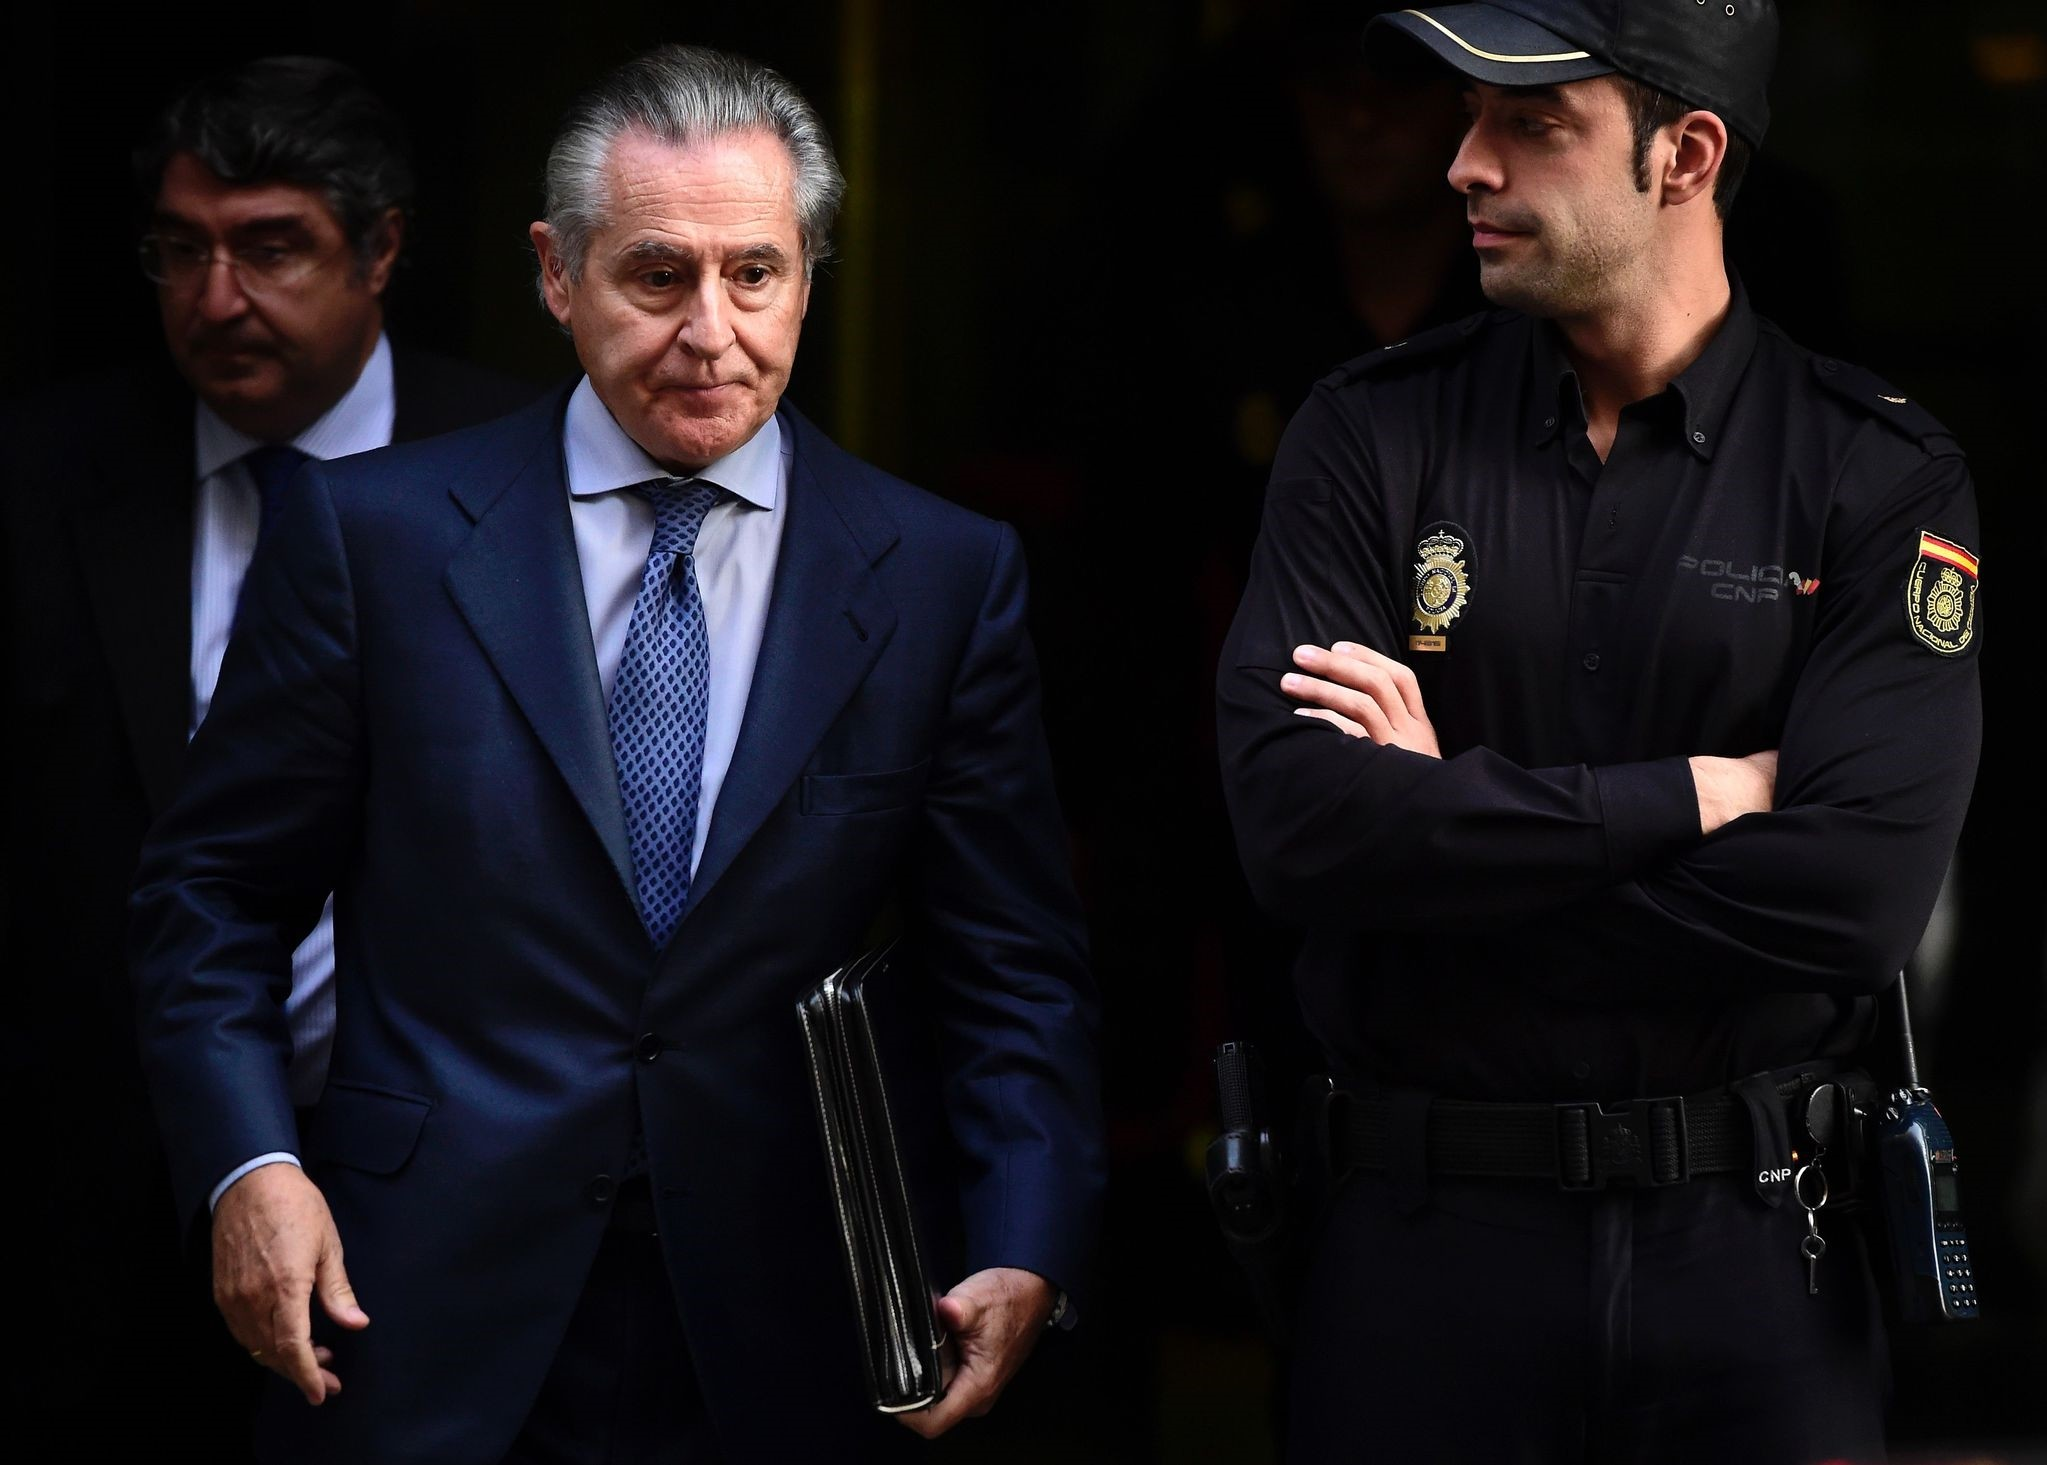 This file photo taken on October 16, 2014 shows Caja Madrid's former head Miguel Blesa leaving a hearing in Madrid accused of spending sprees with a company credit card. (AFP Photo)